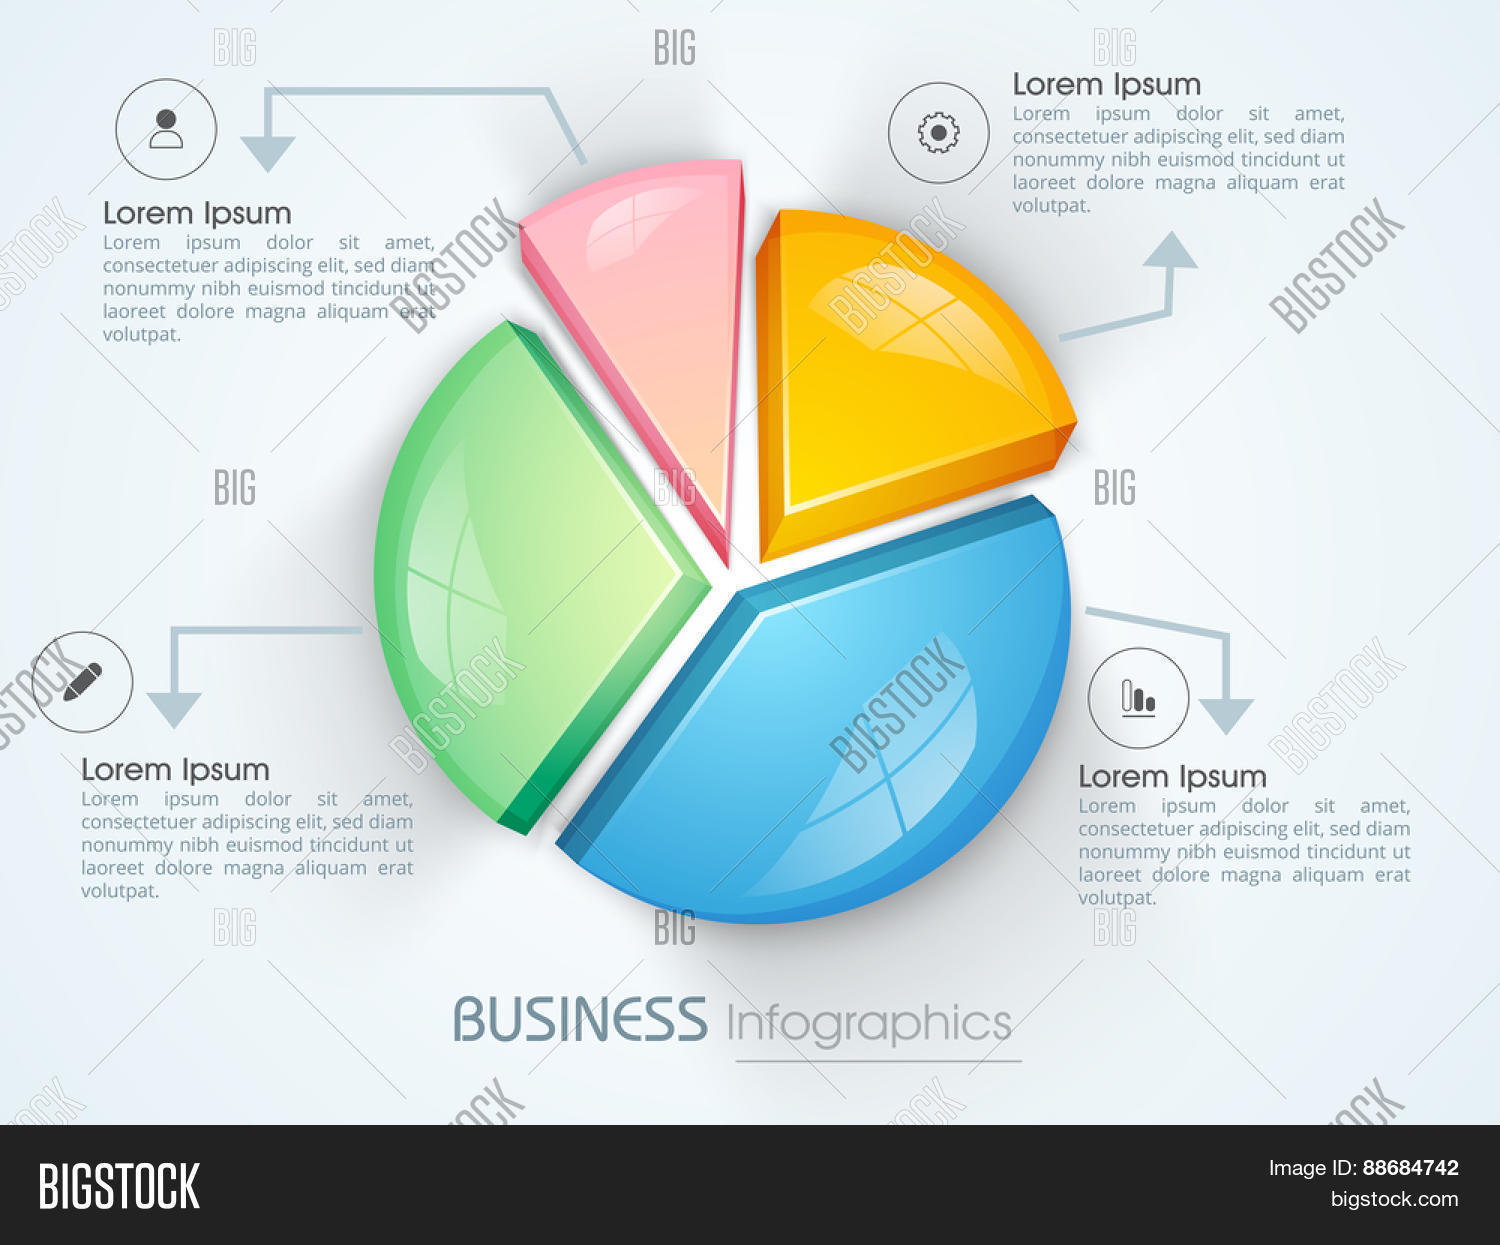 Colorful 3d pie chart infographic vector photo bigstock colorful 3d pie chart infographic for your business reports and financial growth presentation nvjuhfo Choice Image